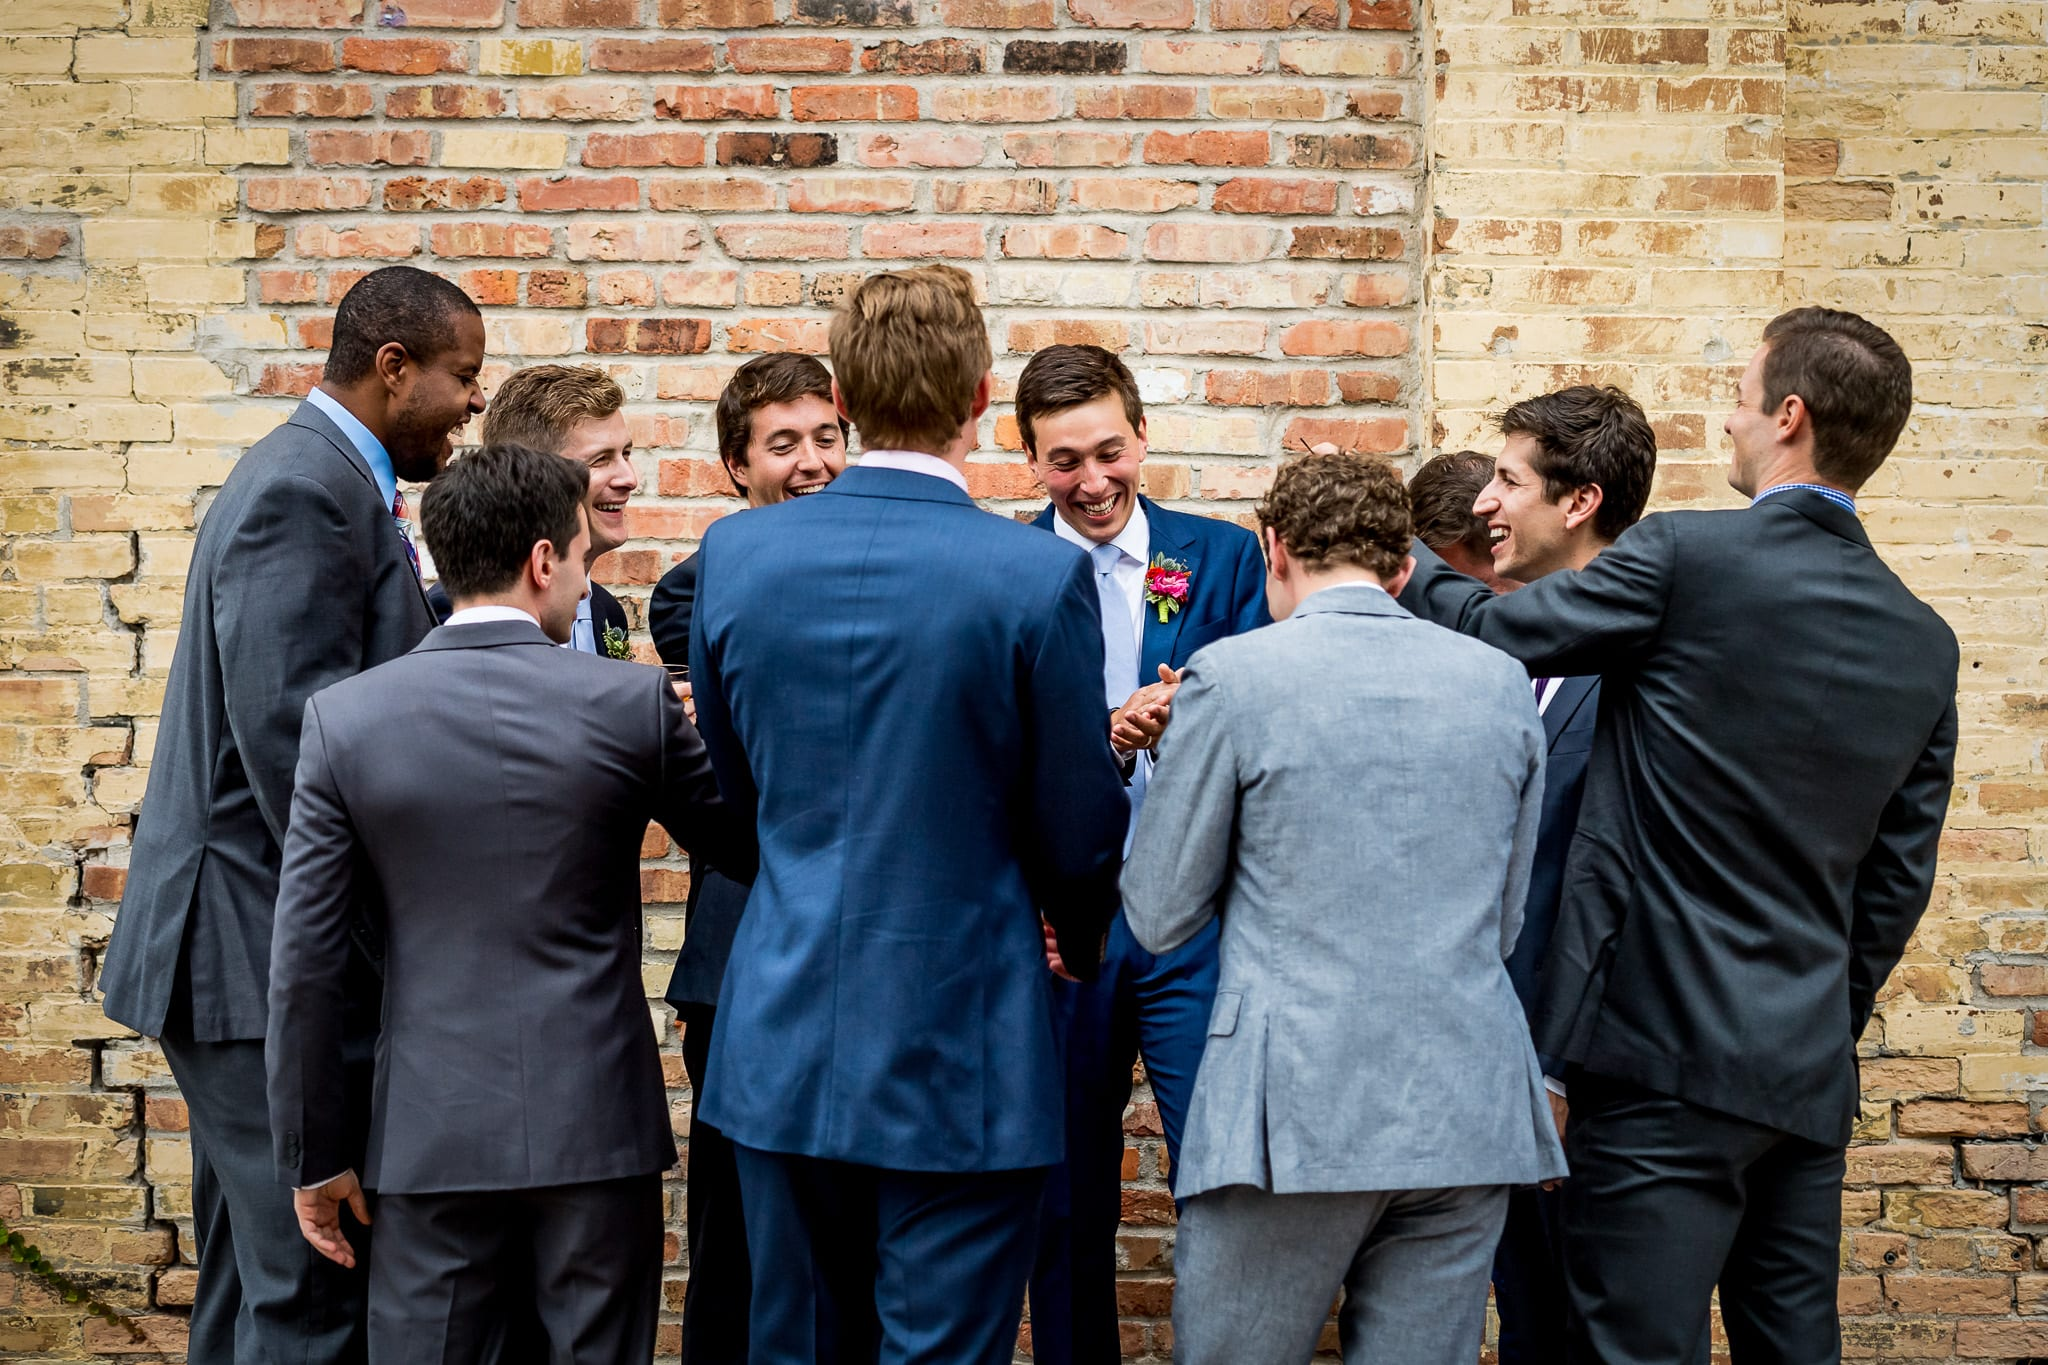 Groom and his friends sharing a big laugh